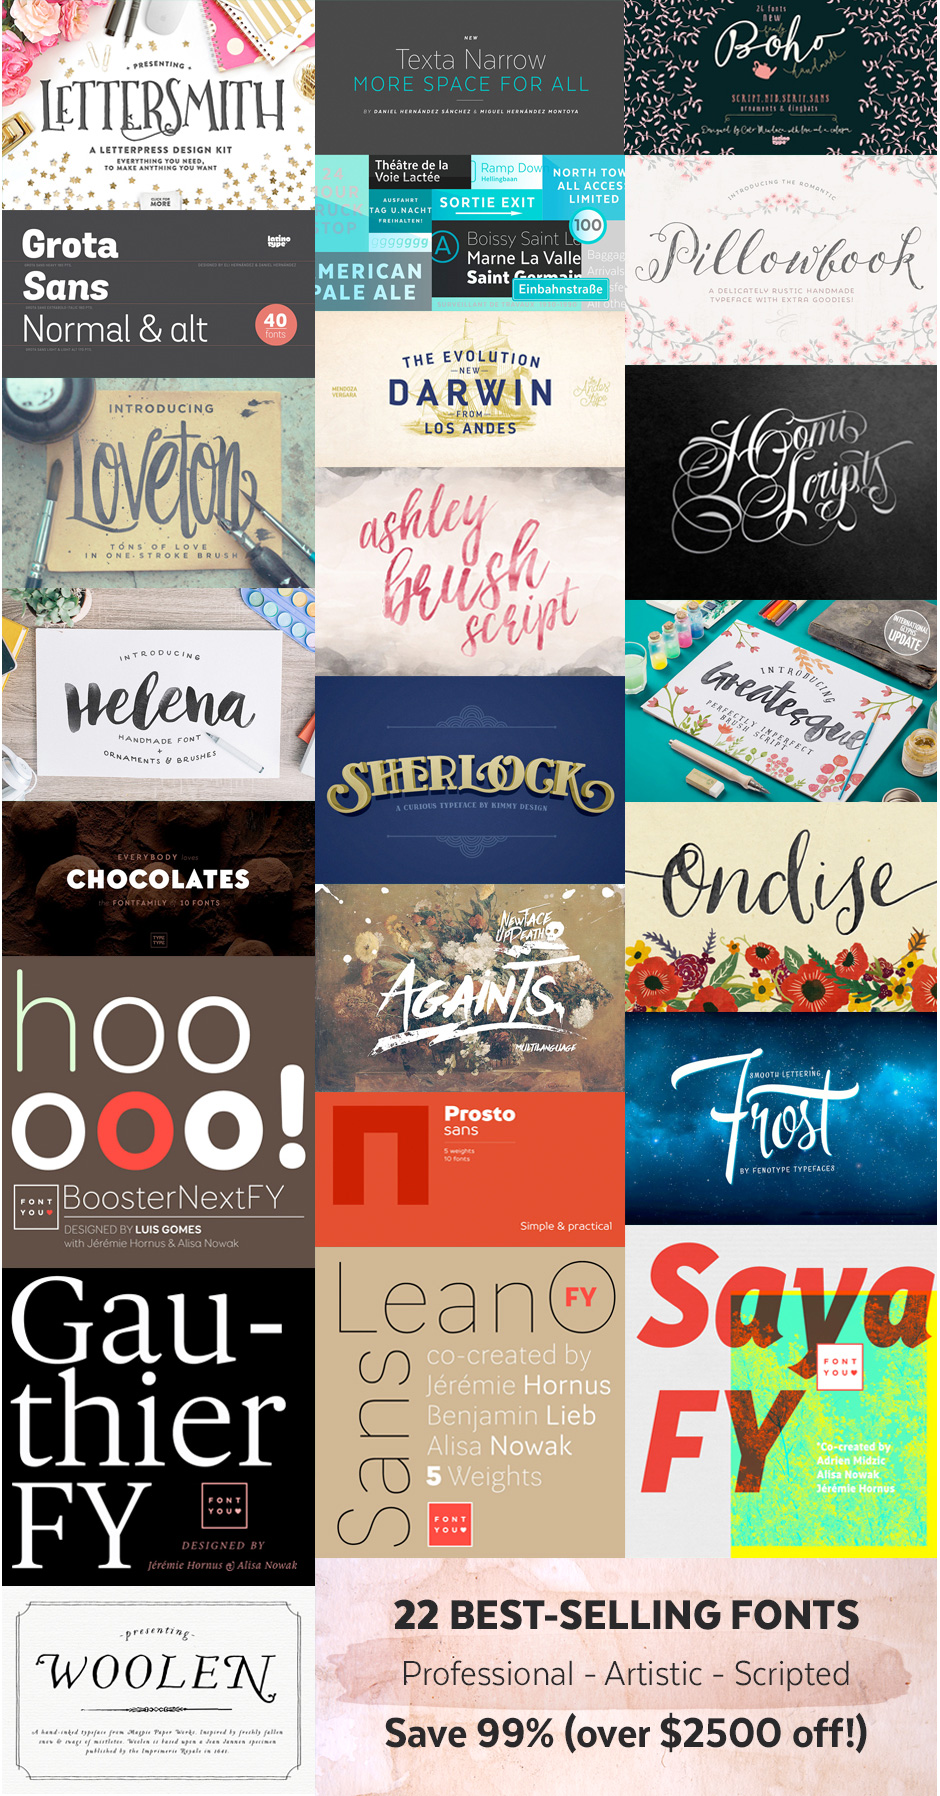 designcuts archives design your own lovely blog 22 professional artistic fonts web fonts and extended licensing just 29